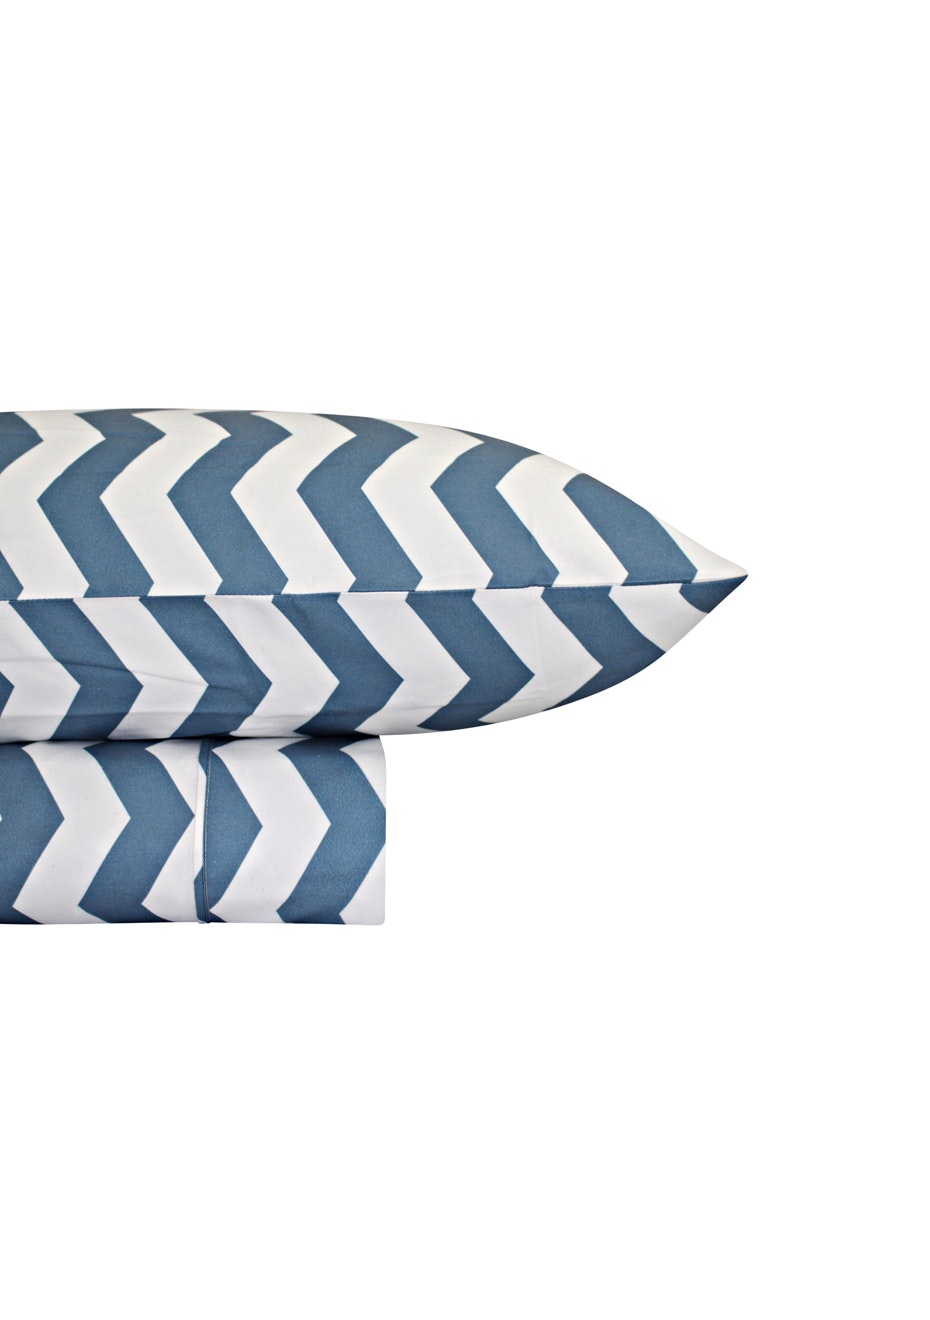 Thermal Flannel Sheet Sets - Chevron Design - Bay Blue - Queen Bed